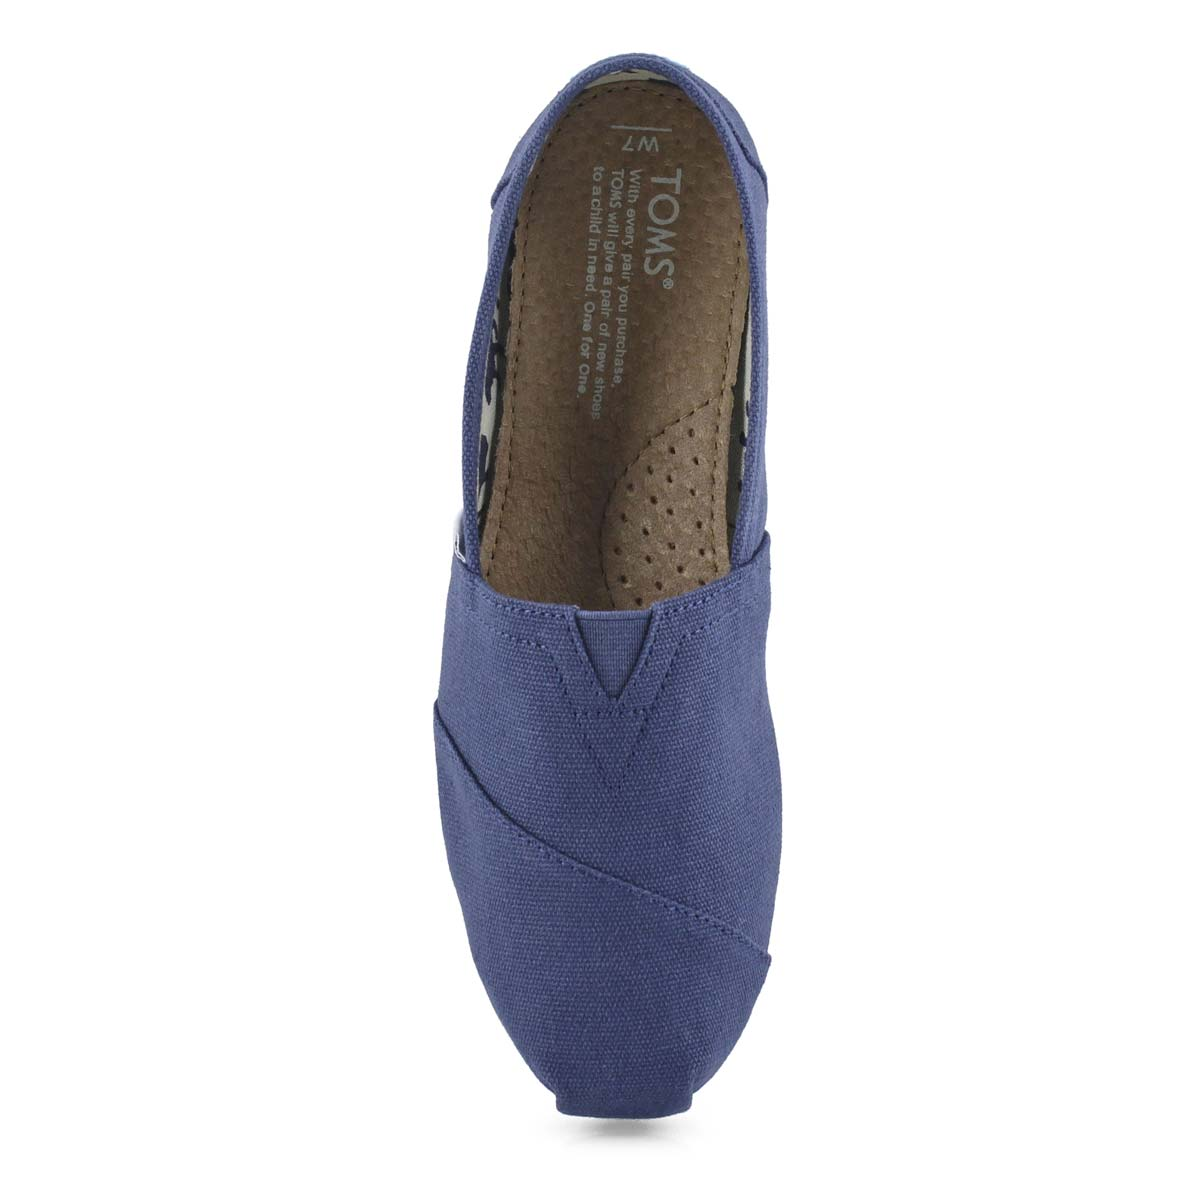 Women's Classic Canvas Loafer - Navys